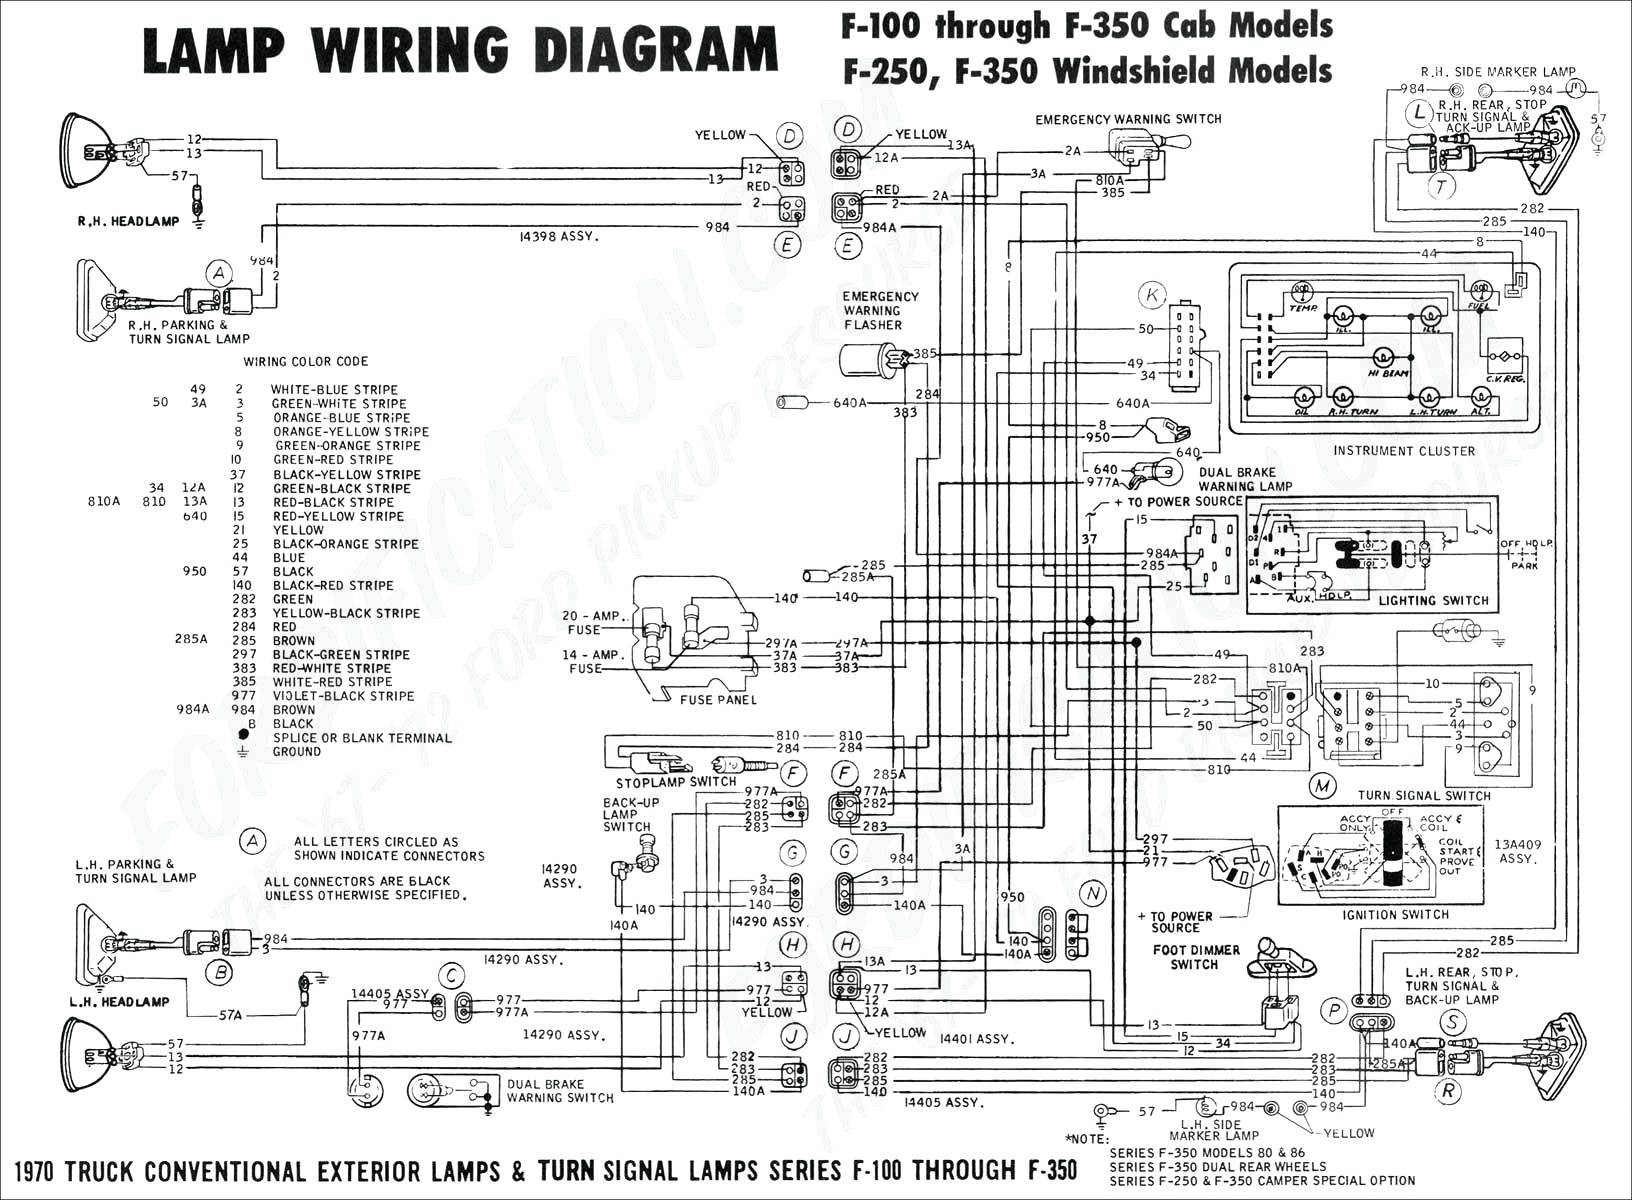 [DIAGRAM] 1967 Ford F250 Wiring Diagram FULL Version HD